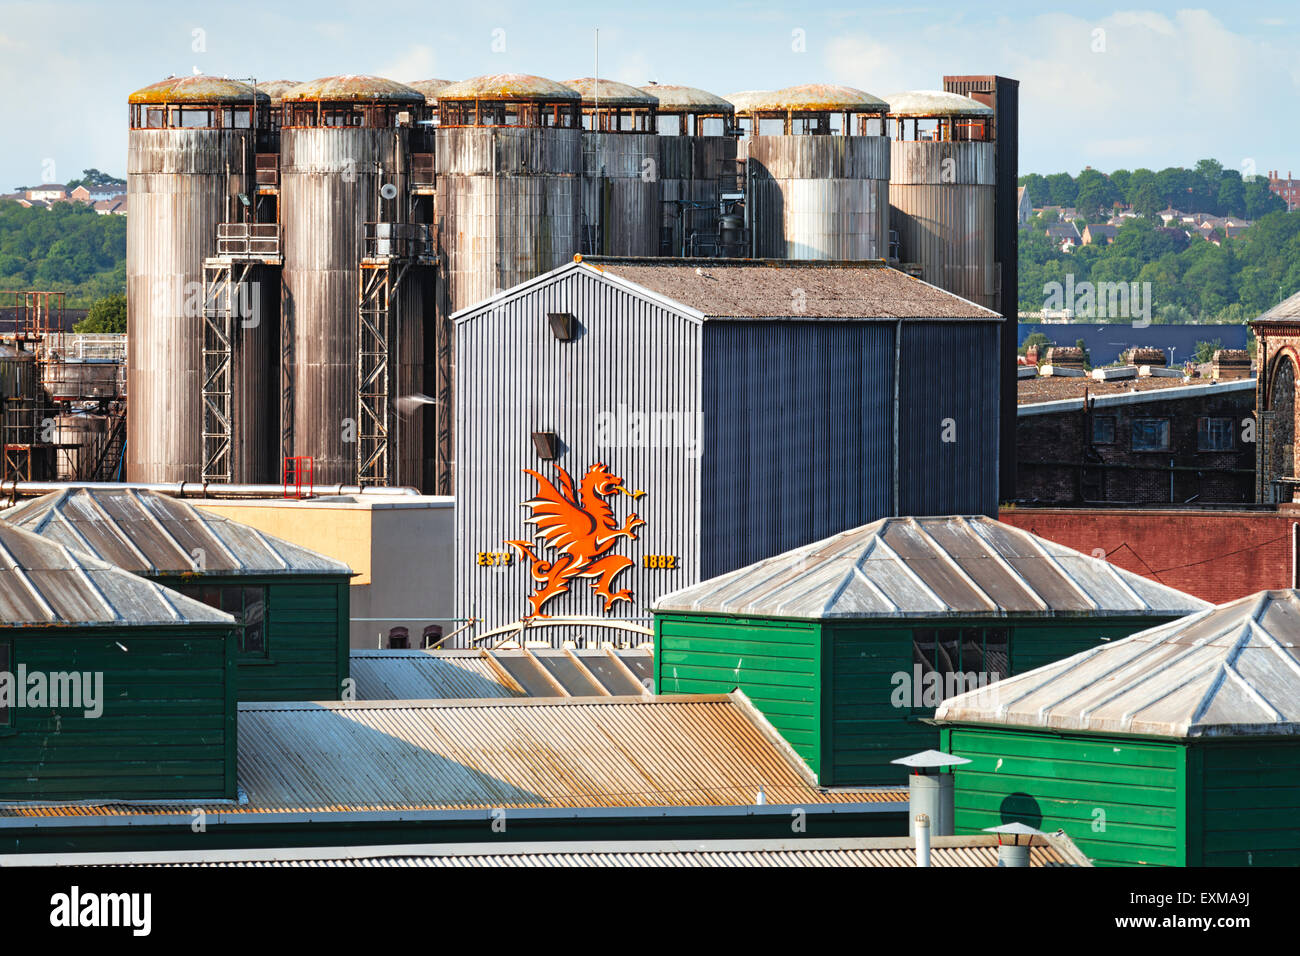 Brains S.A. regional brewery in Cardiff City, Wales. - Stock Image